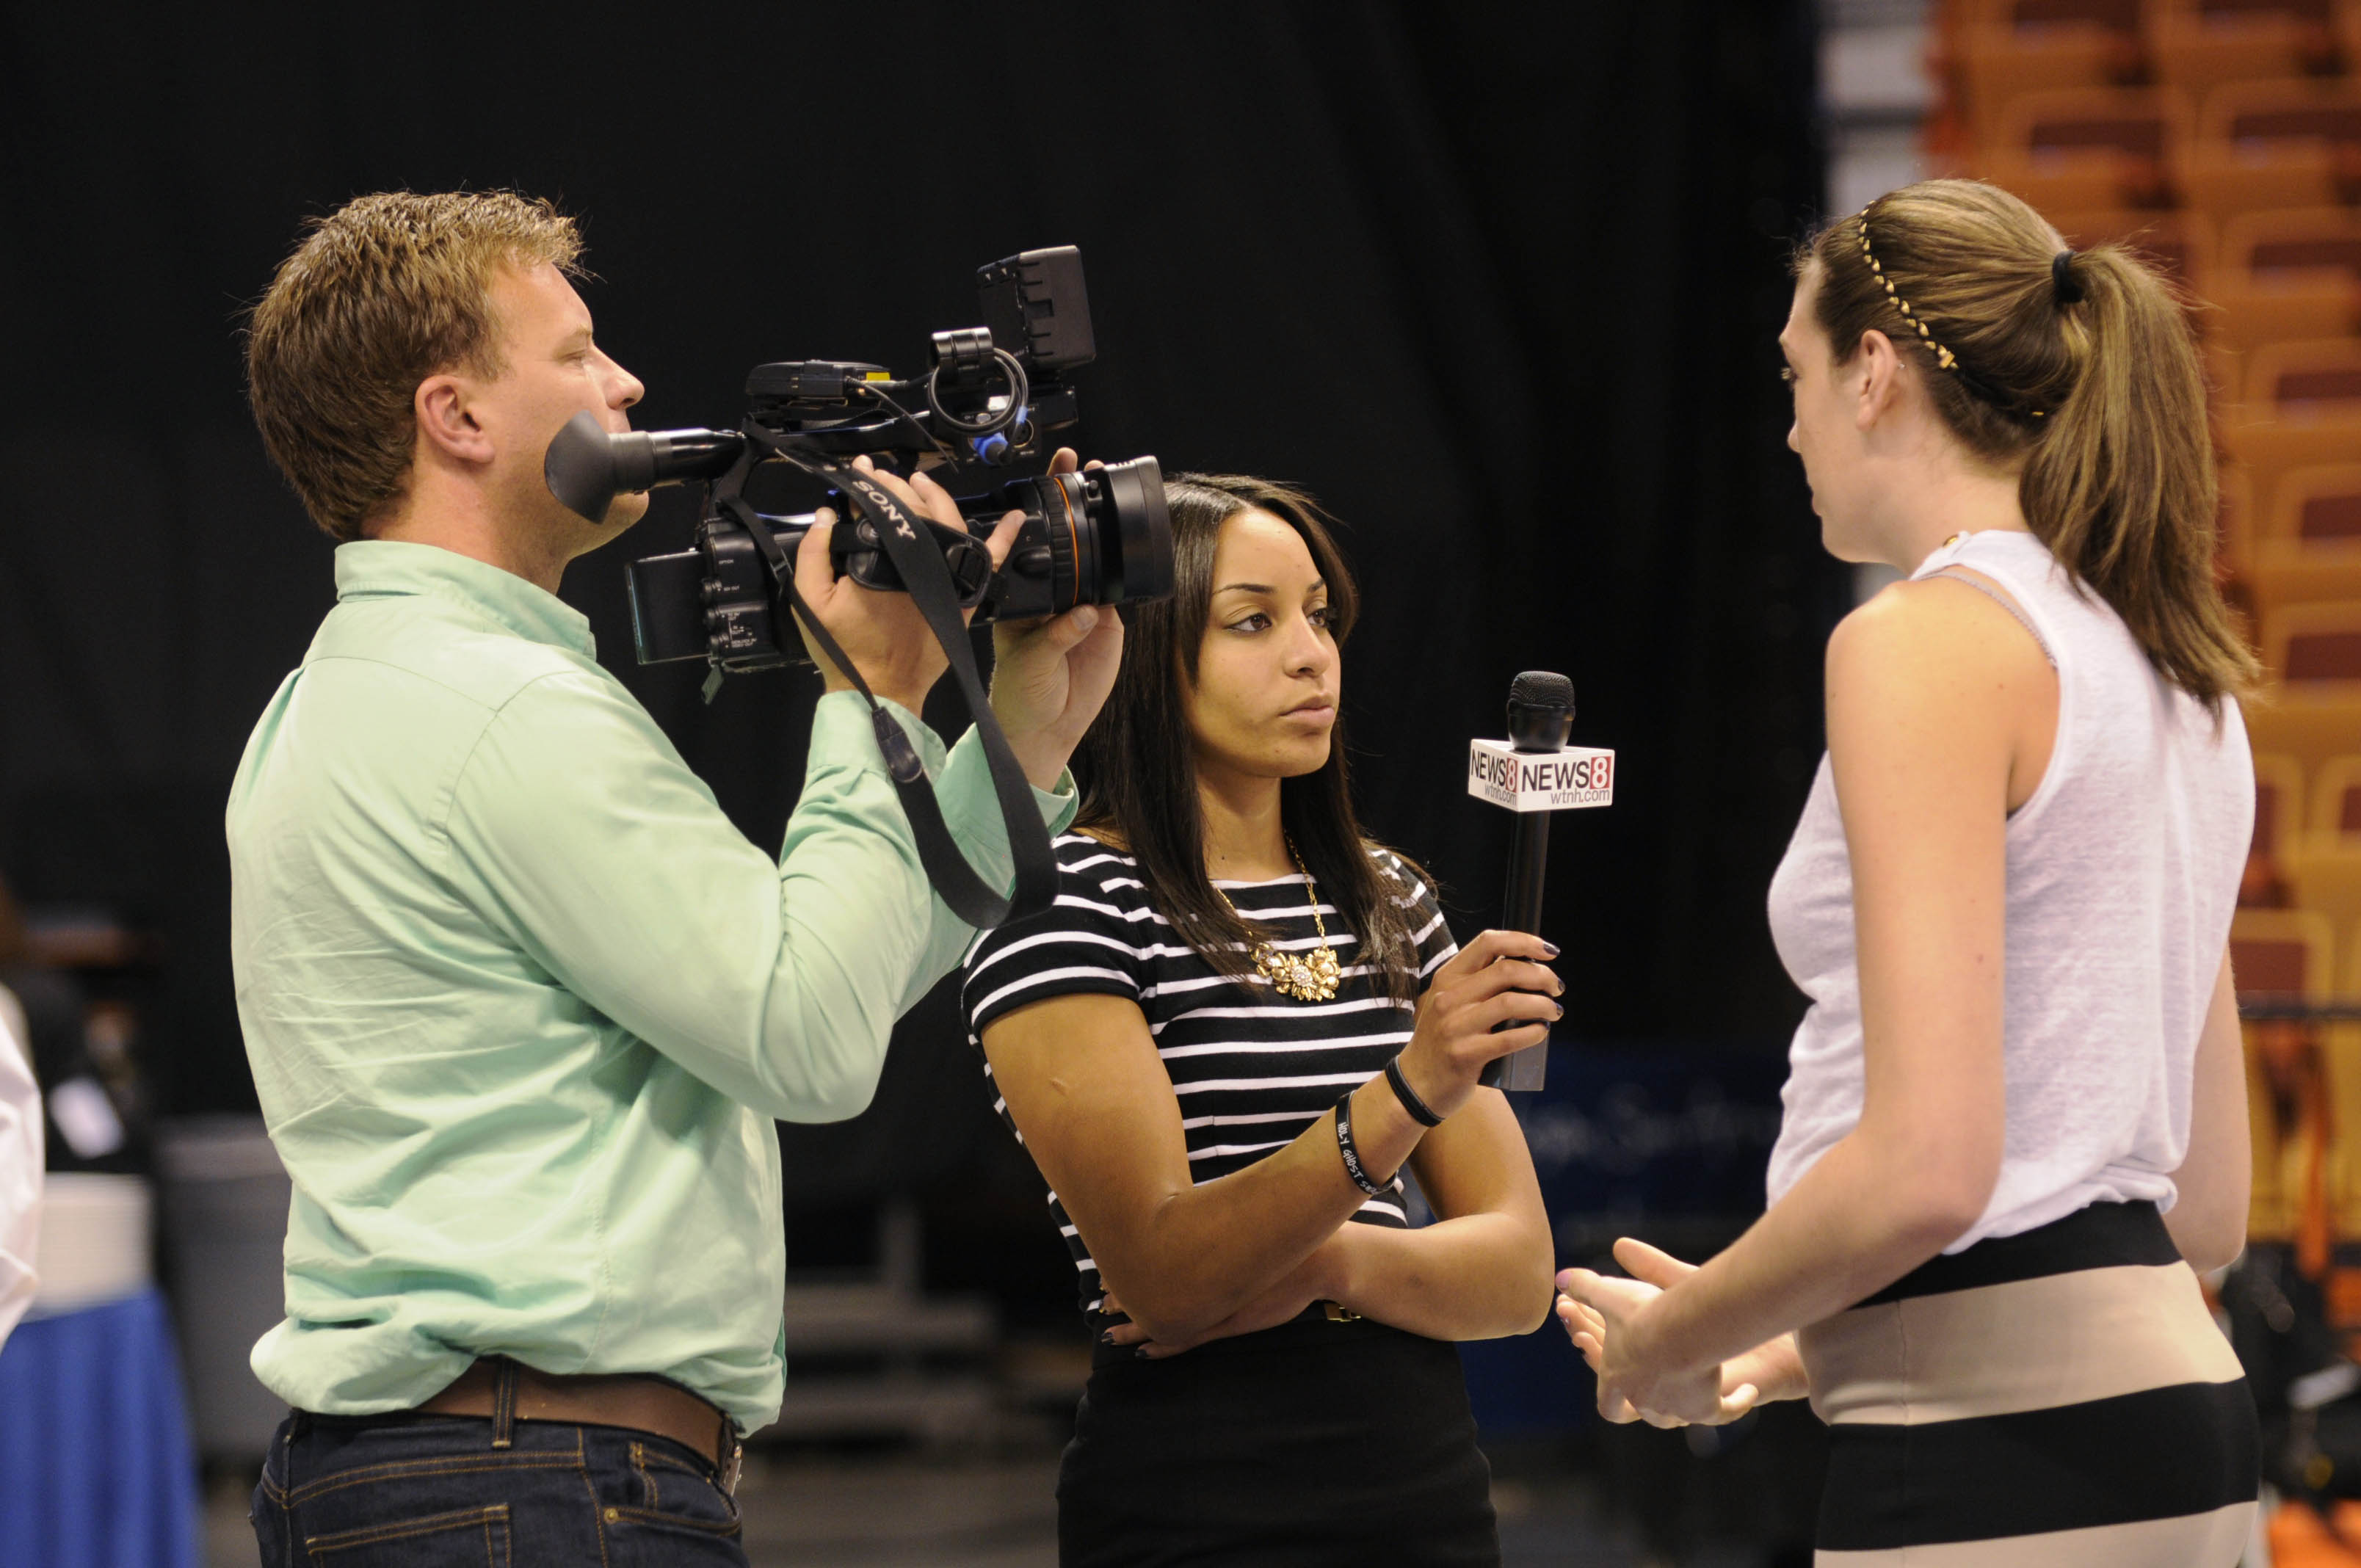 UNCASVILLE 10/14/13 UConn's Bria Hartley (center) helps WTNH's John Pierson (left) with an interview with UConn's Breanna Stewart (right) at the American Athletic Conference media day at the Mohegan Sun Arena Monday.  Stewart was selected as the Preseason Player of the Year.  CLOE POISSON|cpoisson@courant.com